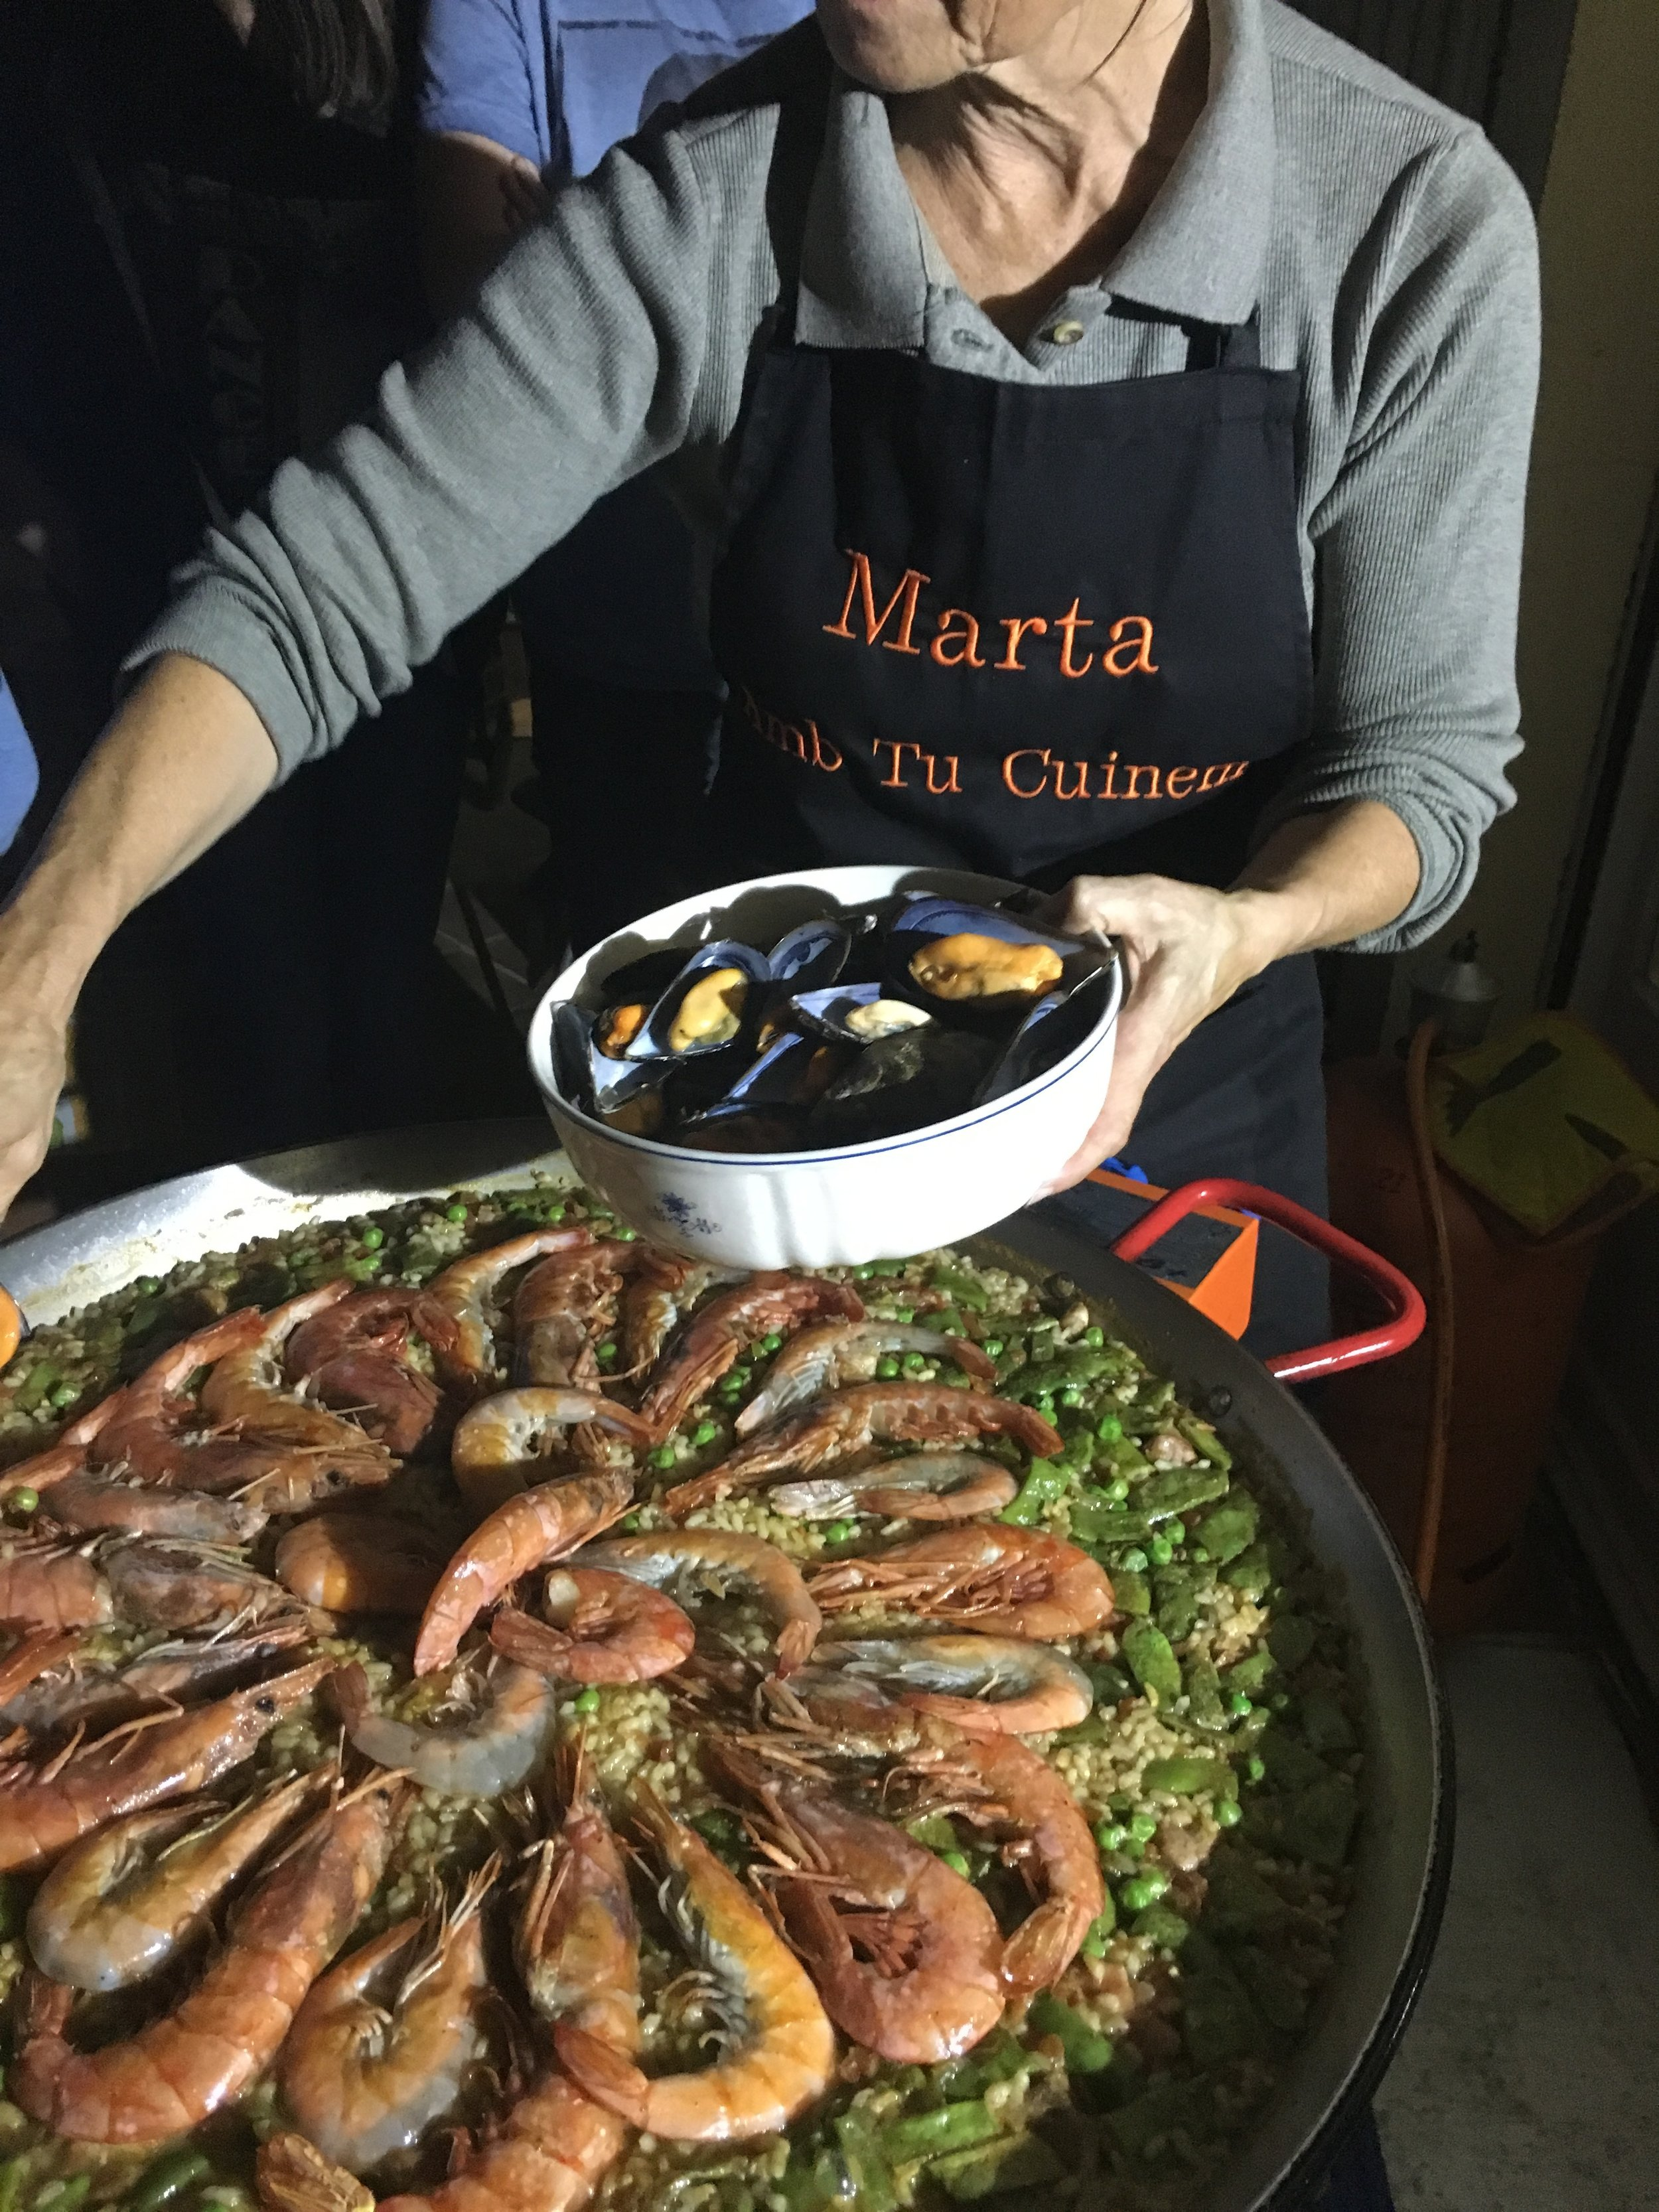 The lovely Ms. Marta putting the finishing touches on the paella!